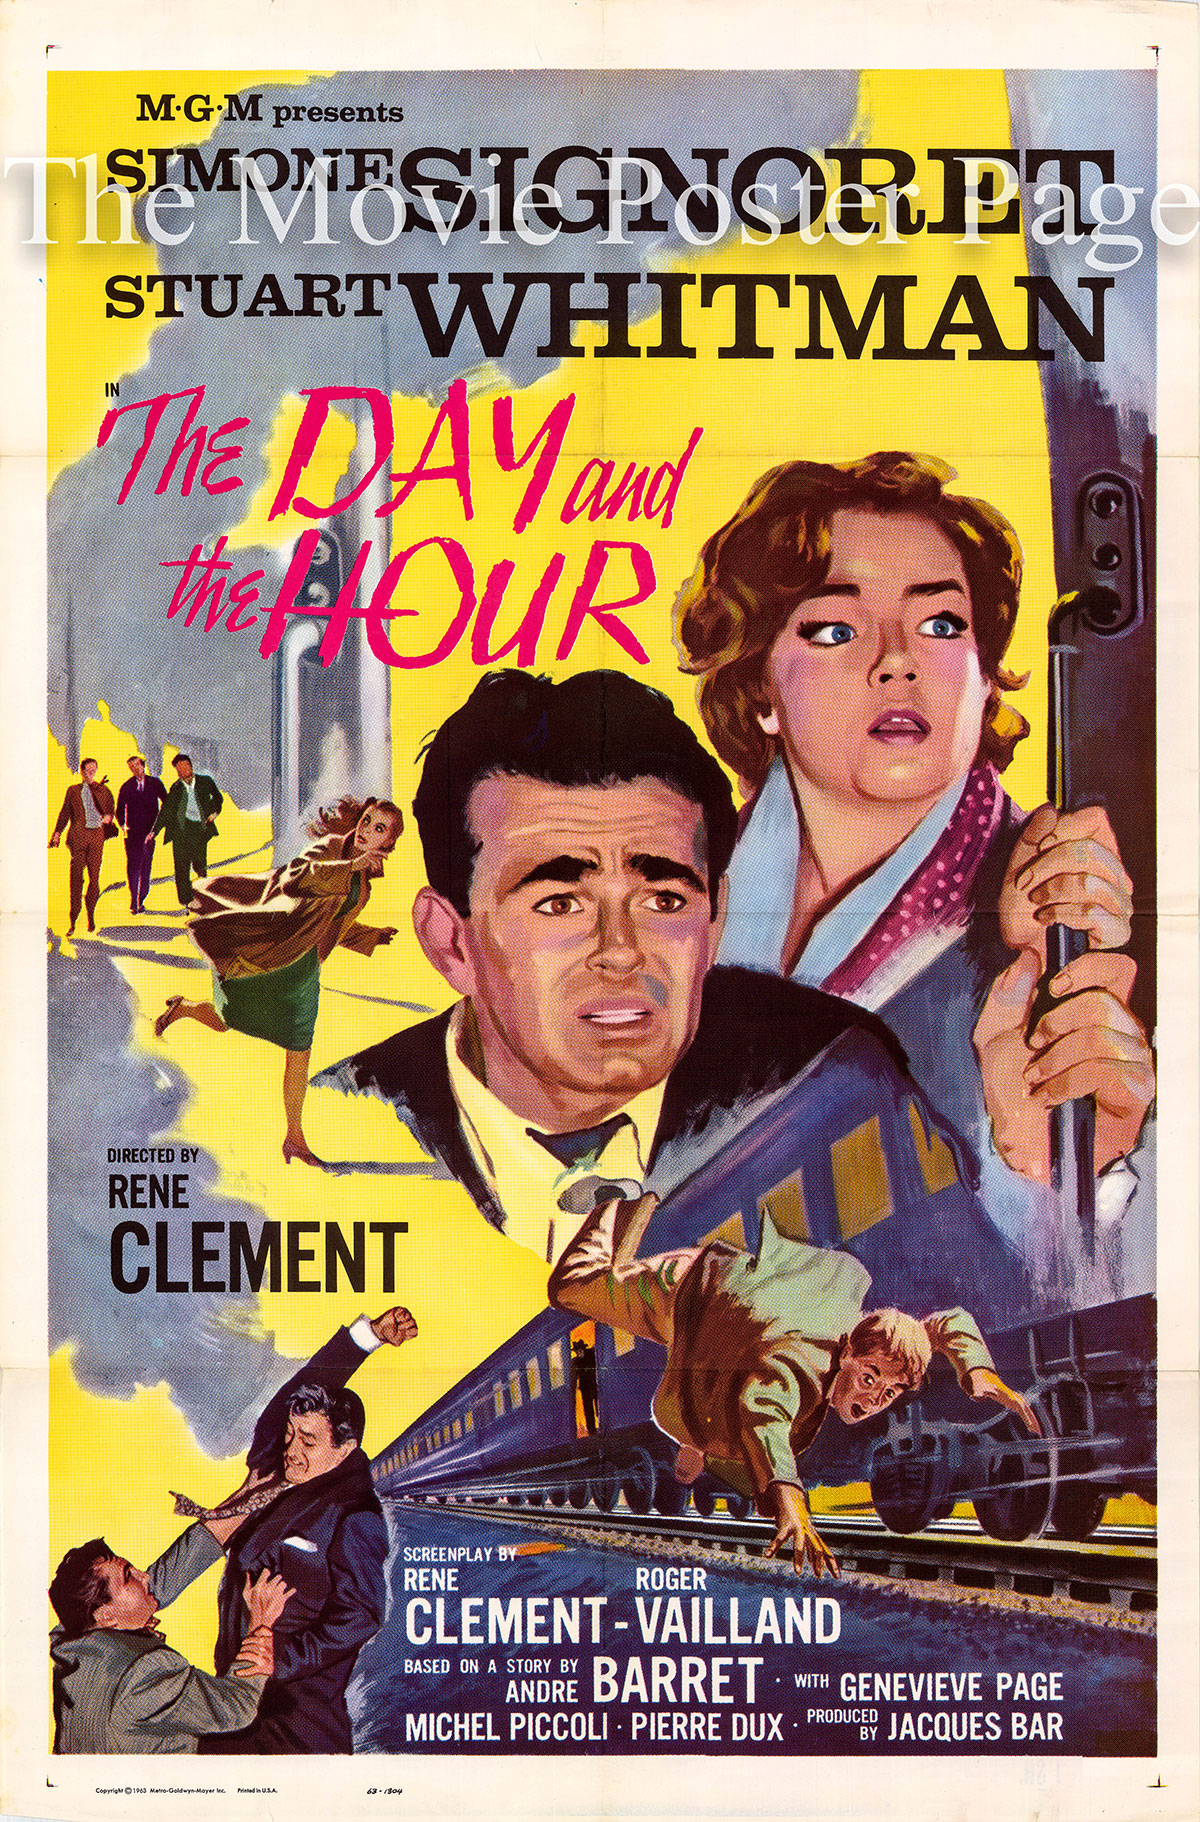 Pictured is a US one-sheet poster for the 1963 Rene Clement film The Day and the Hour starring Simone Signoret.